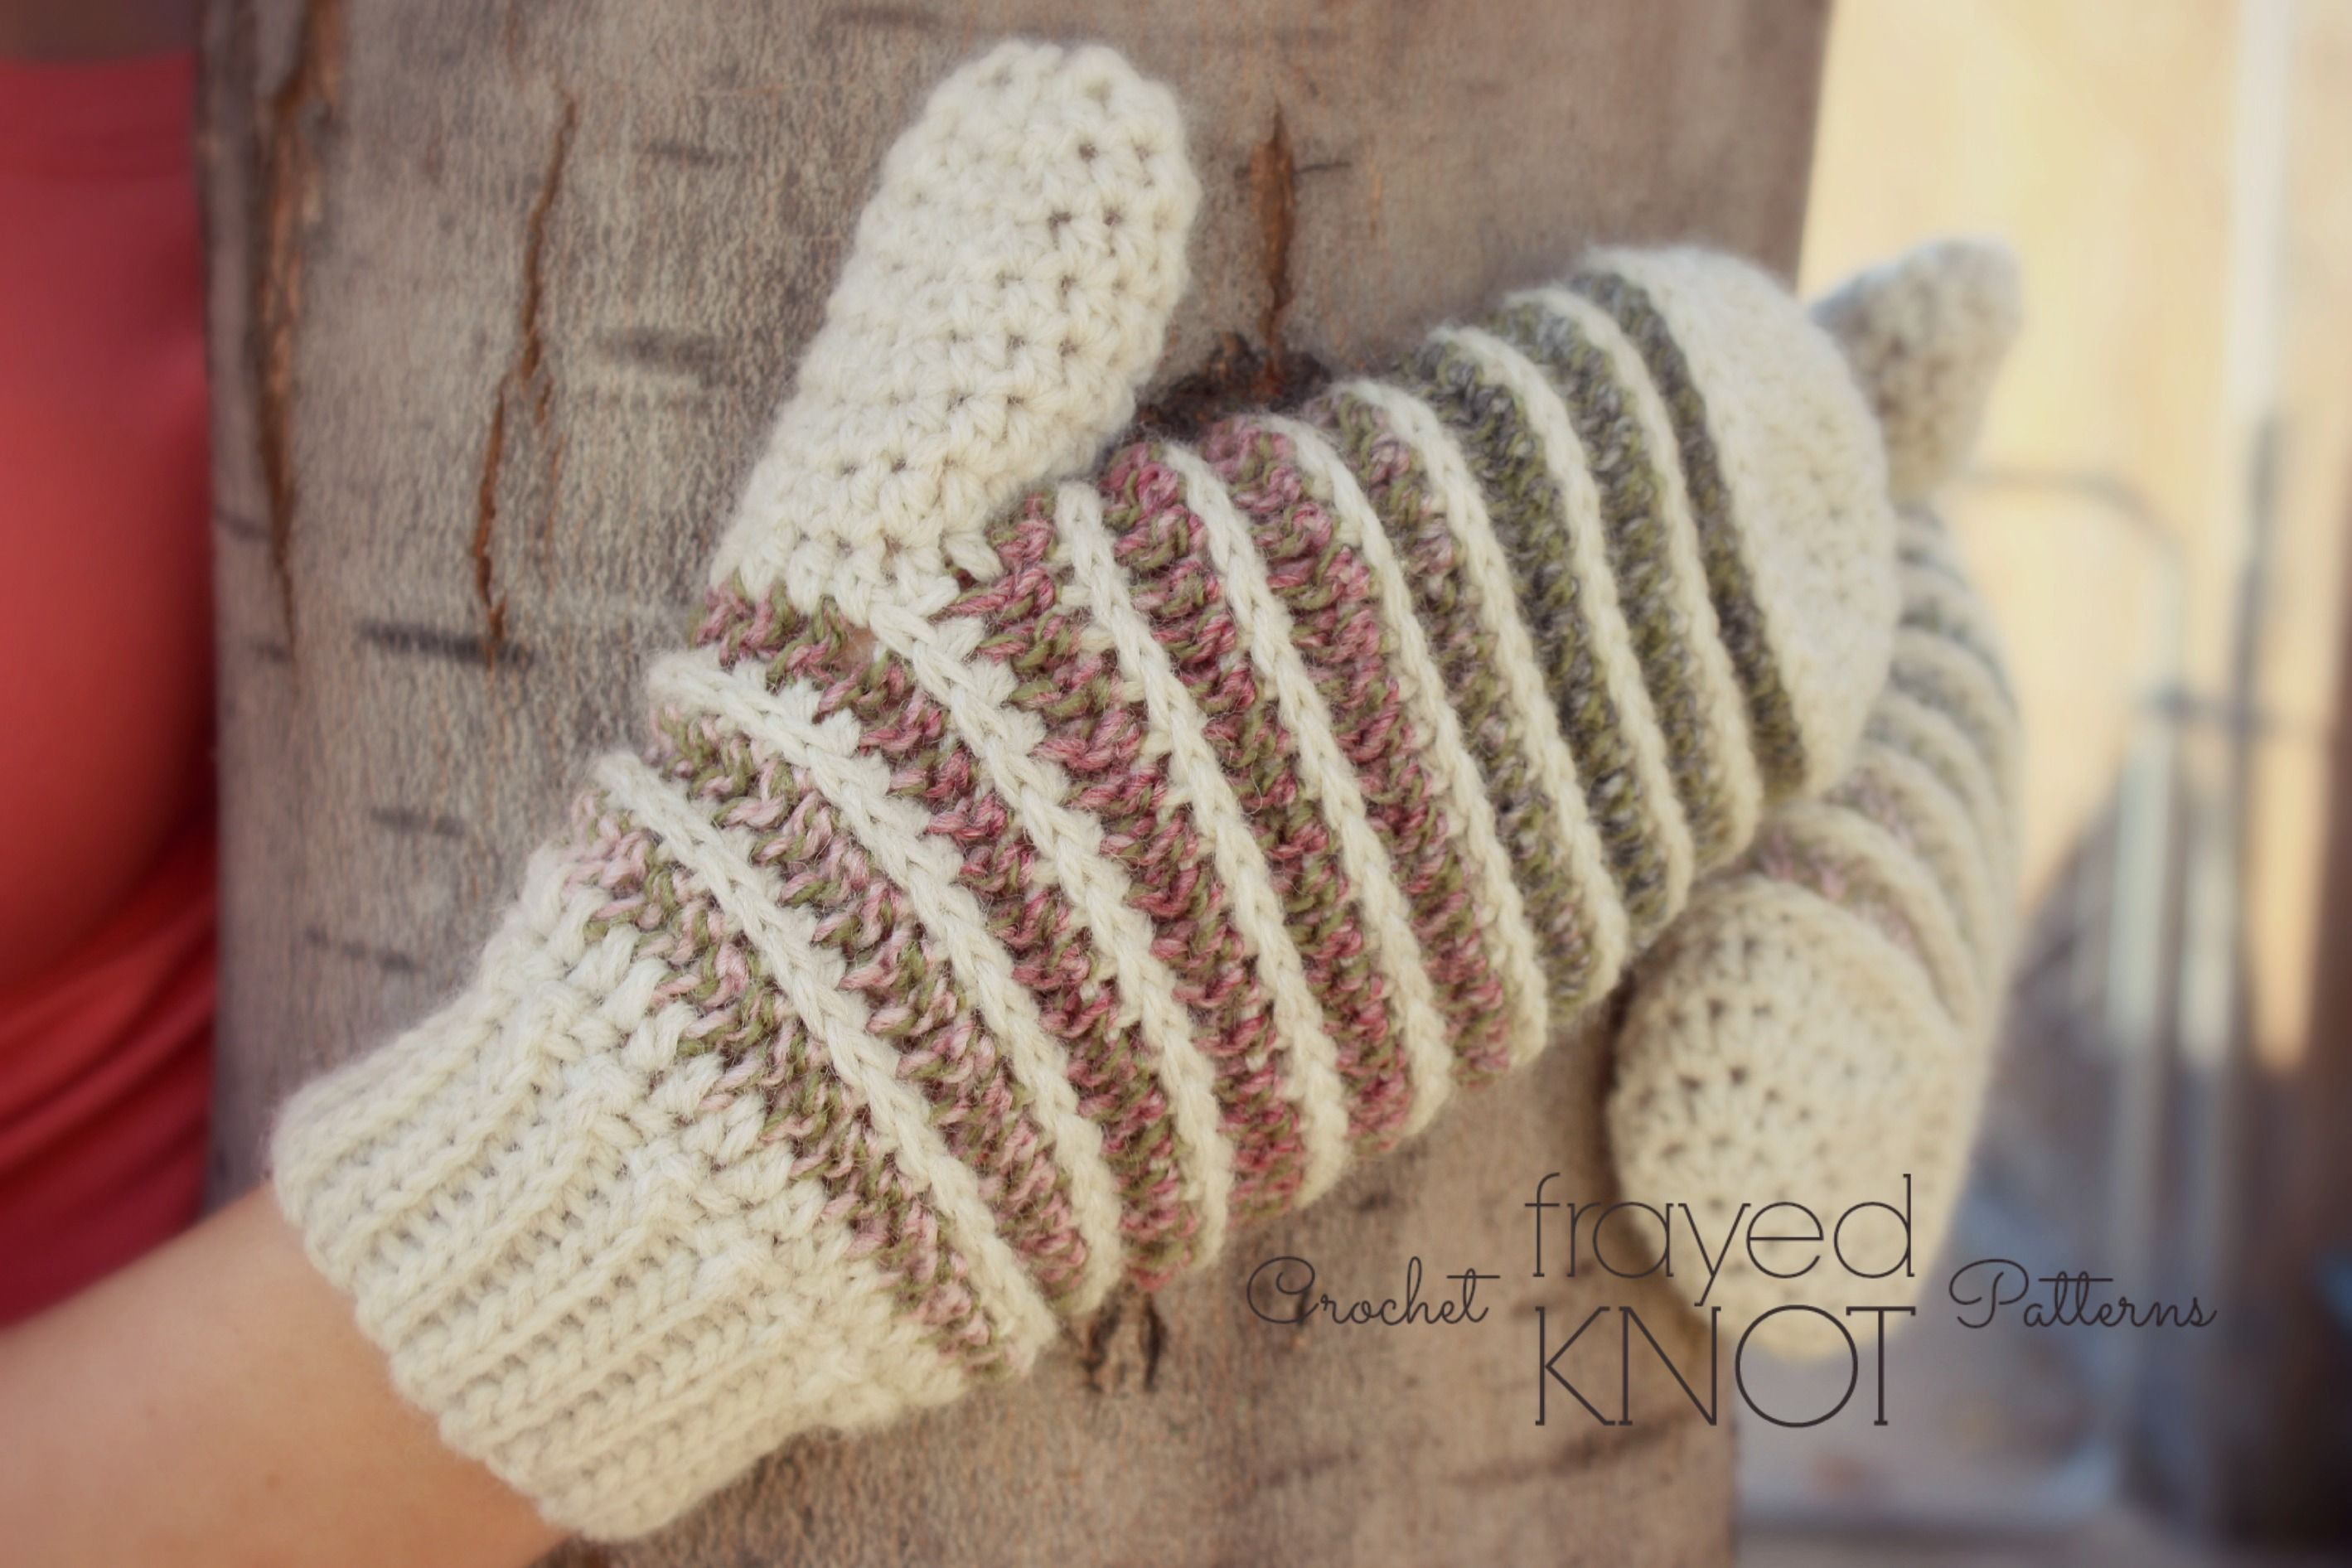 Its Finally My Turn To Share My Free Mitten Pattern For The Crochet